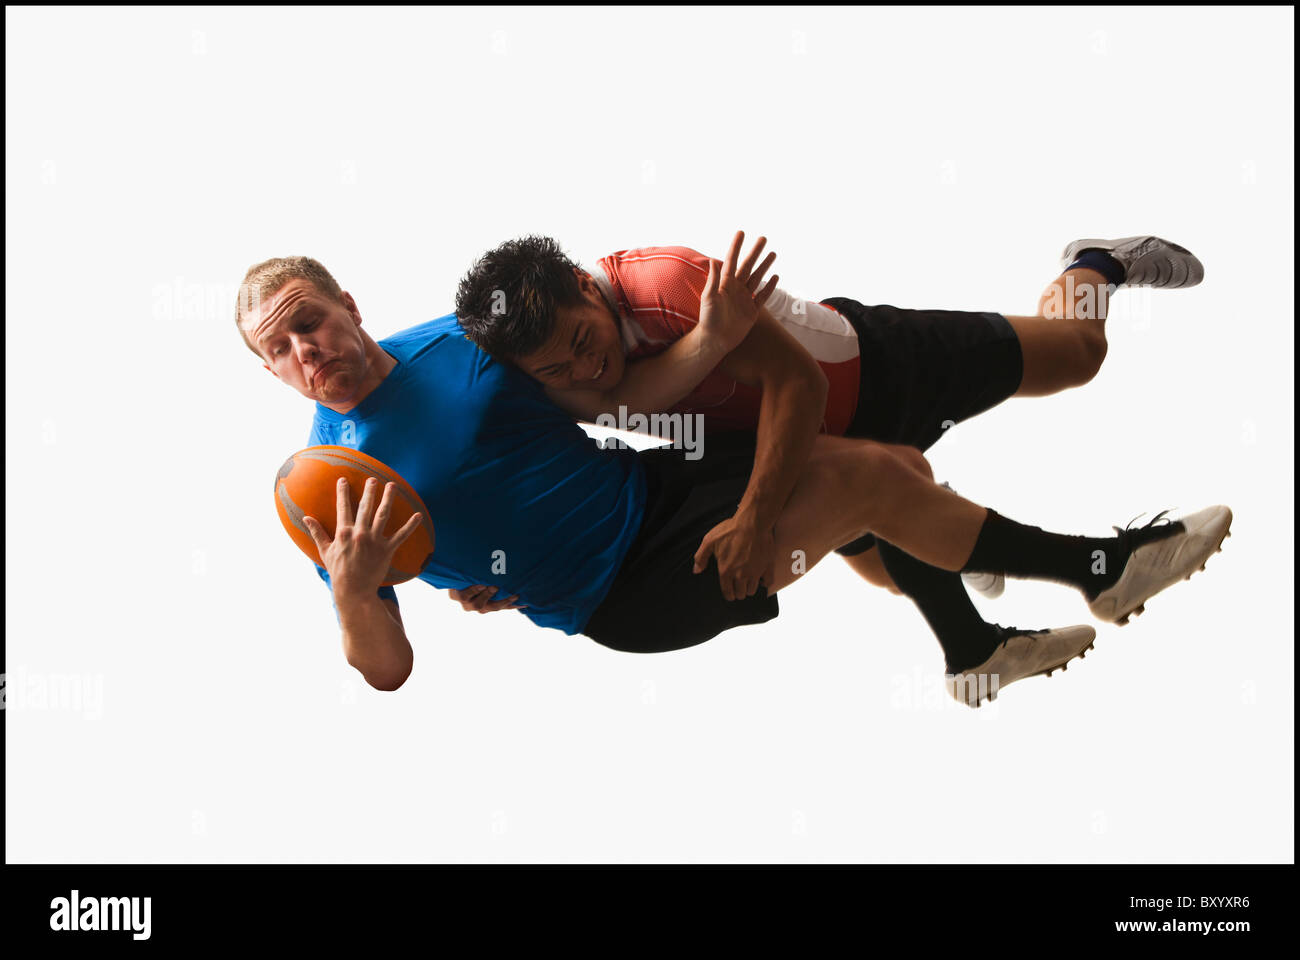 Rugby players tackling for ball - Stock Image